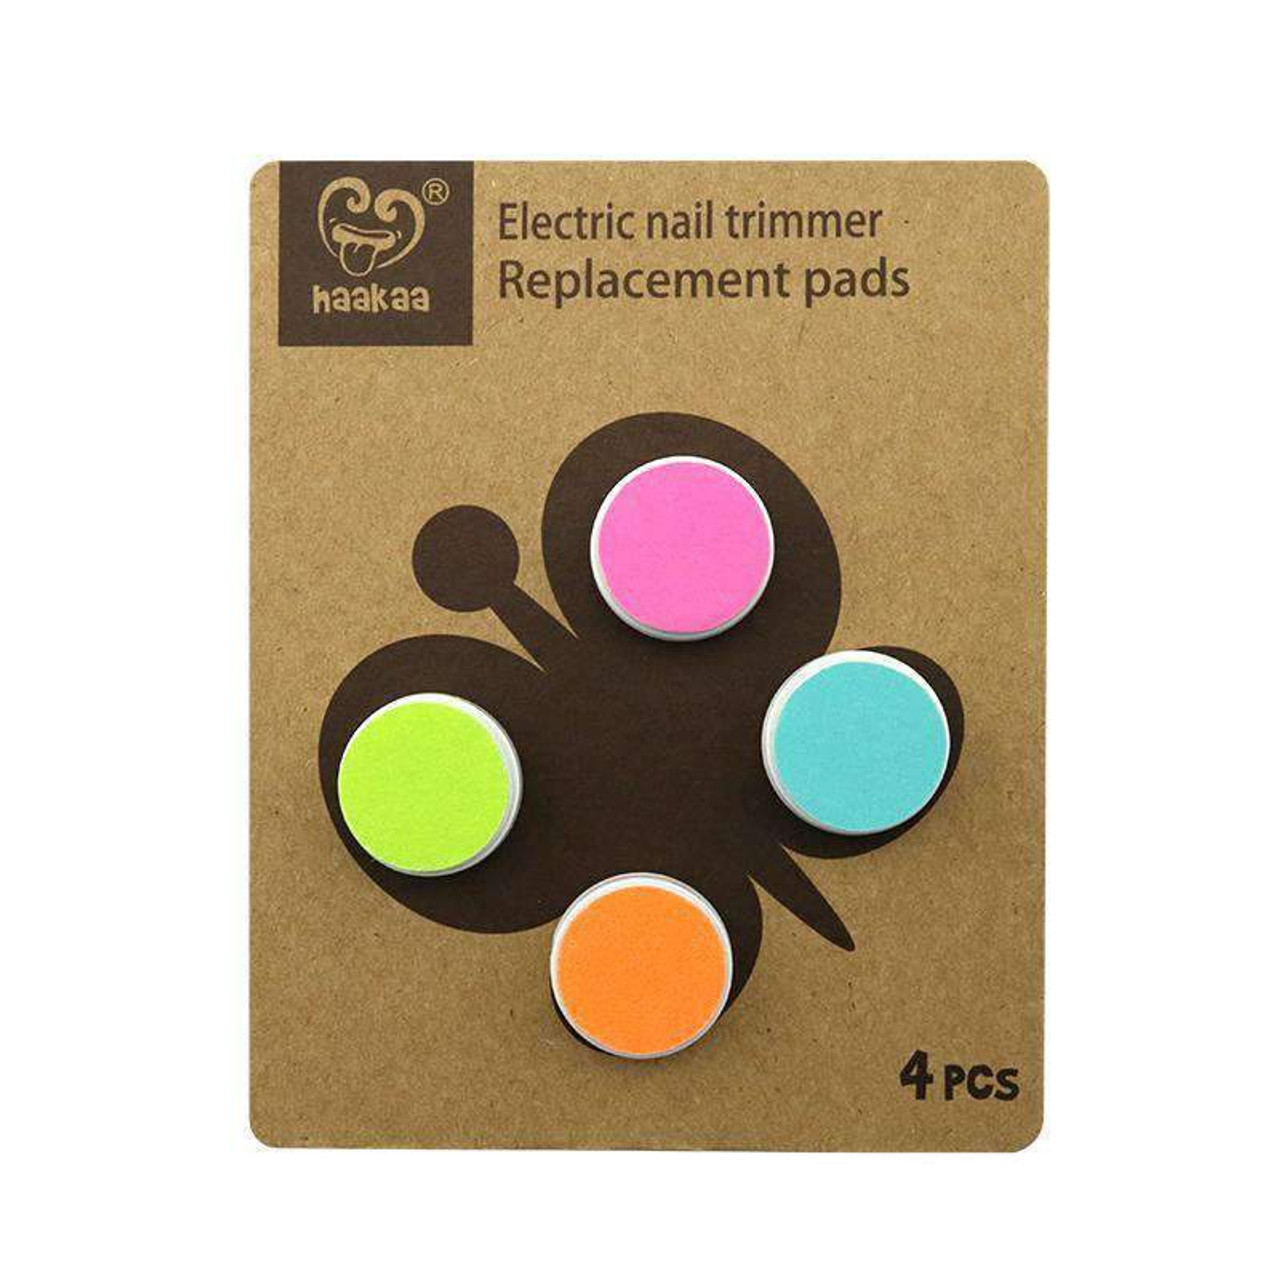 Haakaa Electric Nail Trimmer Replacement Pads at Baby Barn Discounts Haakaa nail trimmer replacement pads - 4 pads in total.